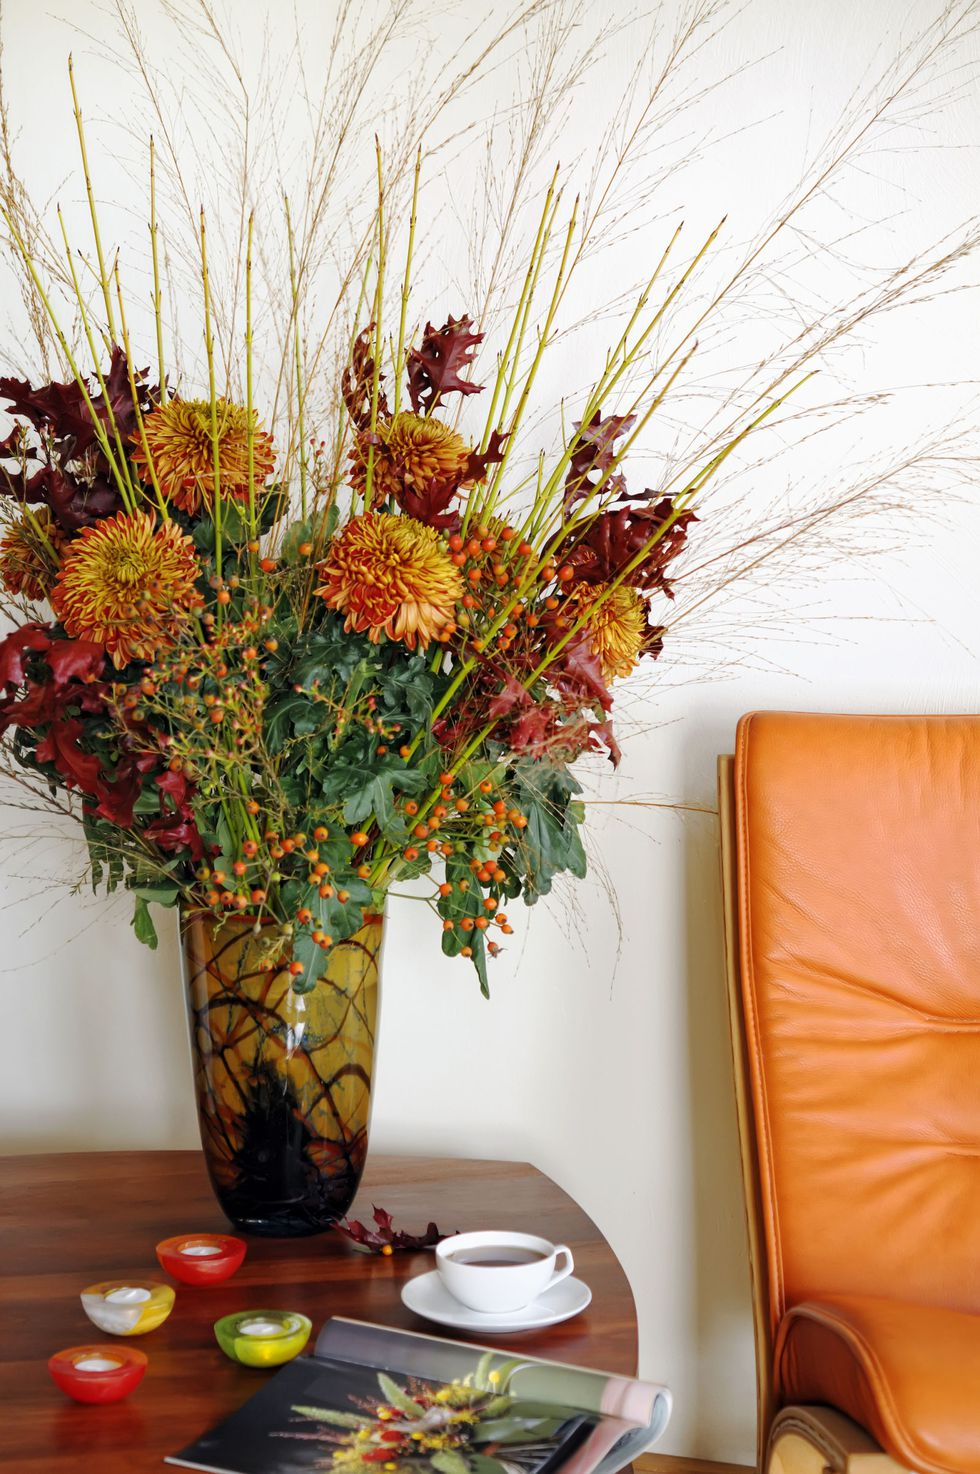 Beautiful Fall Flower Arrangement - Photo Credit Elle Decor by Getty Images